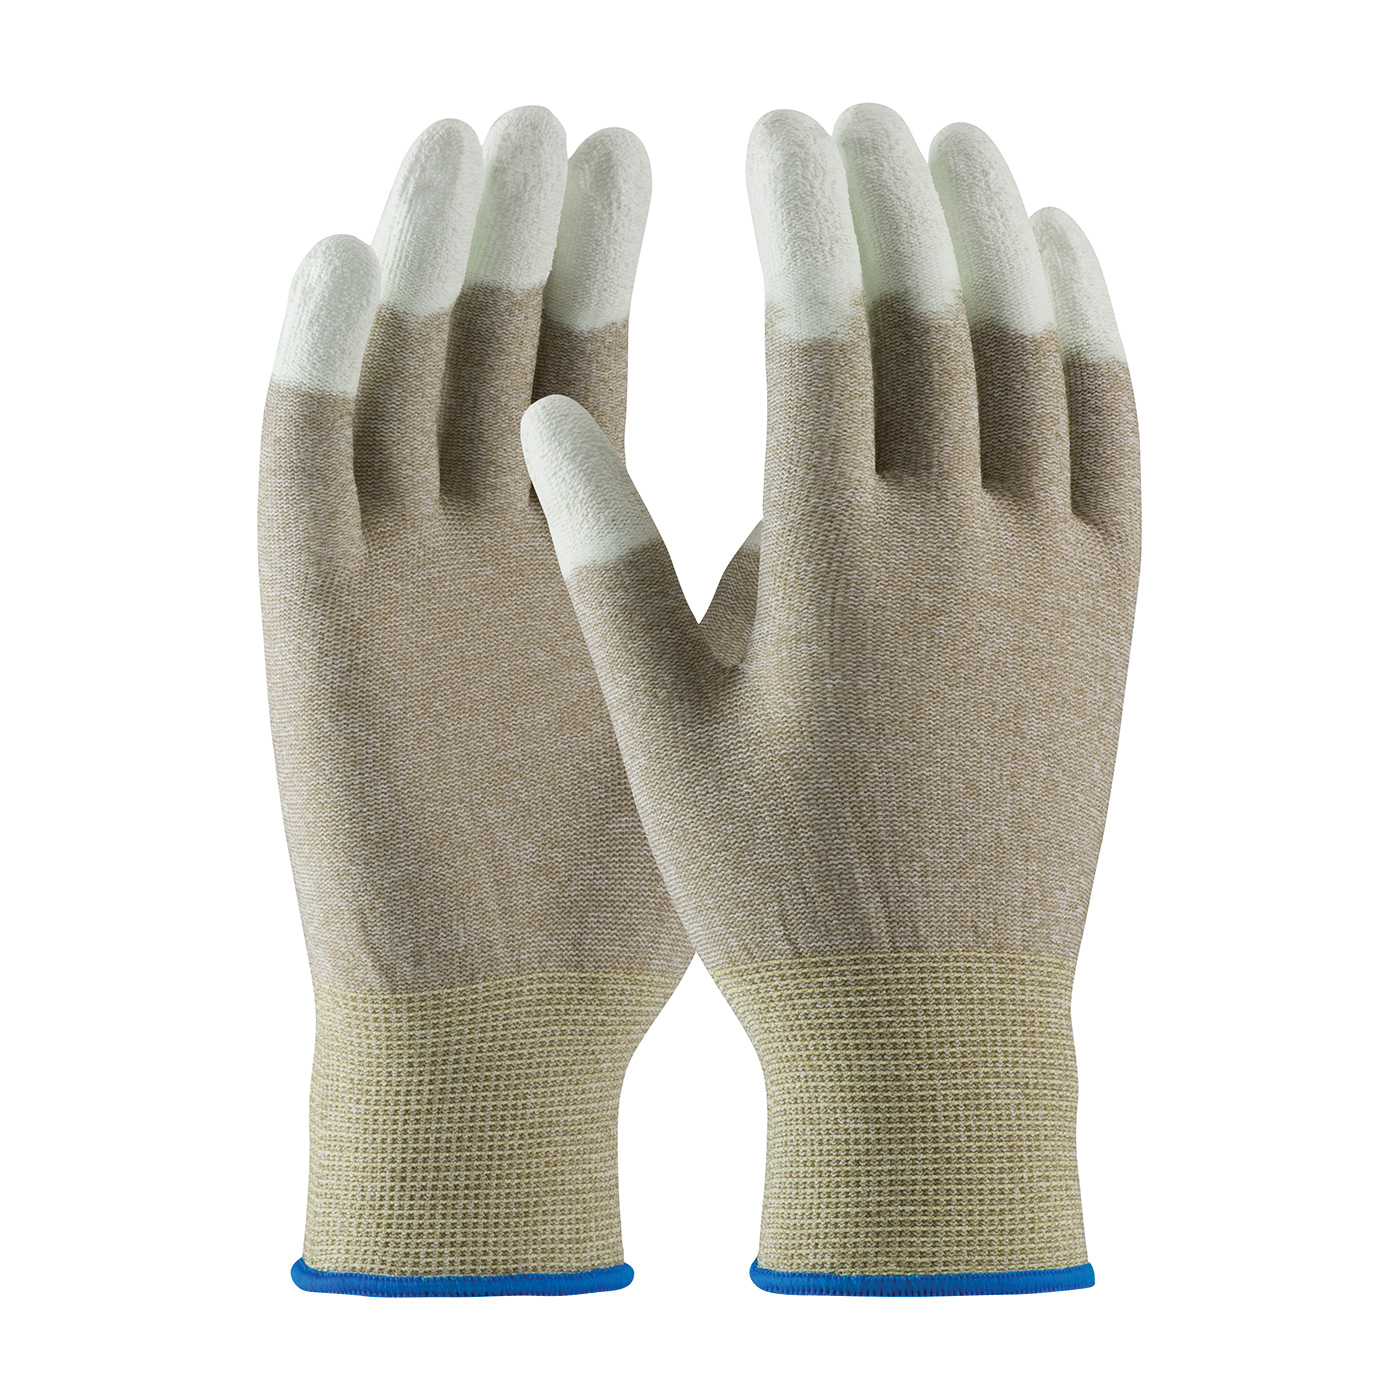 PIP® CleanTeam® 40-6416/L Electrostatic Dissipative Antistatic Gloves, Full Finger/Seamless Style, Carbon Fiber/Nylon/Synthetic, Copper/White, Continuous Knit Wrist Cuff, Polyurethane Coating, 9.7 in L, Resists: Abrasion and Puncture, ASTM D-257:2007